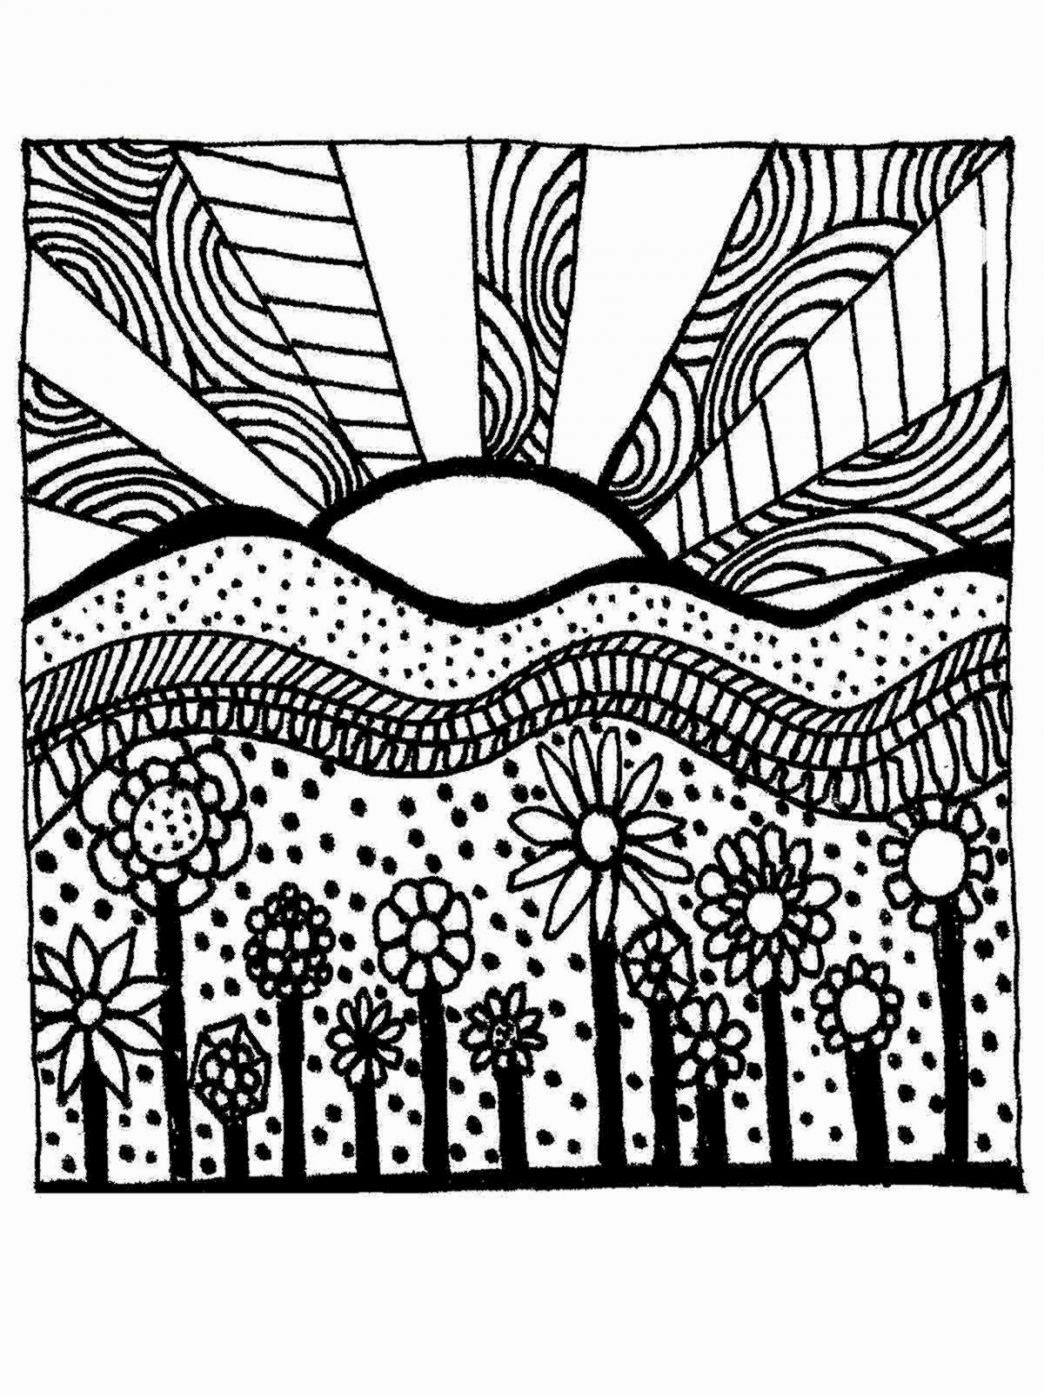 Coloring activities for seniors - Printable Coloring Pages For Adults Coloringpages321